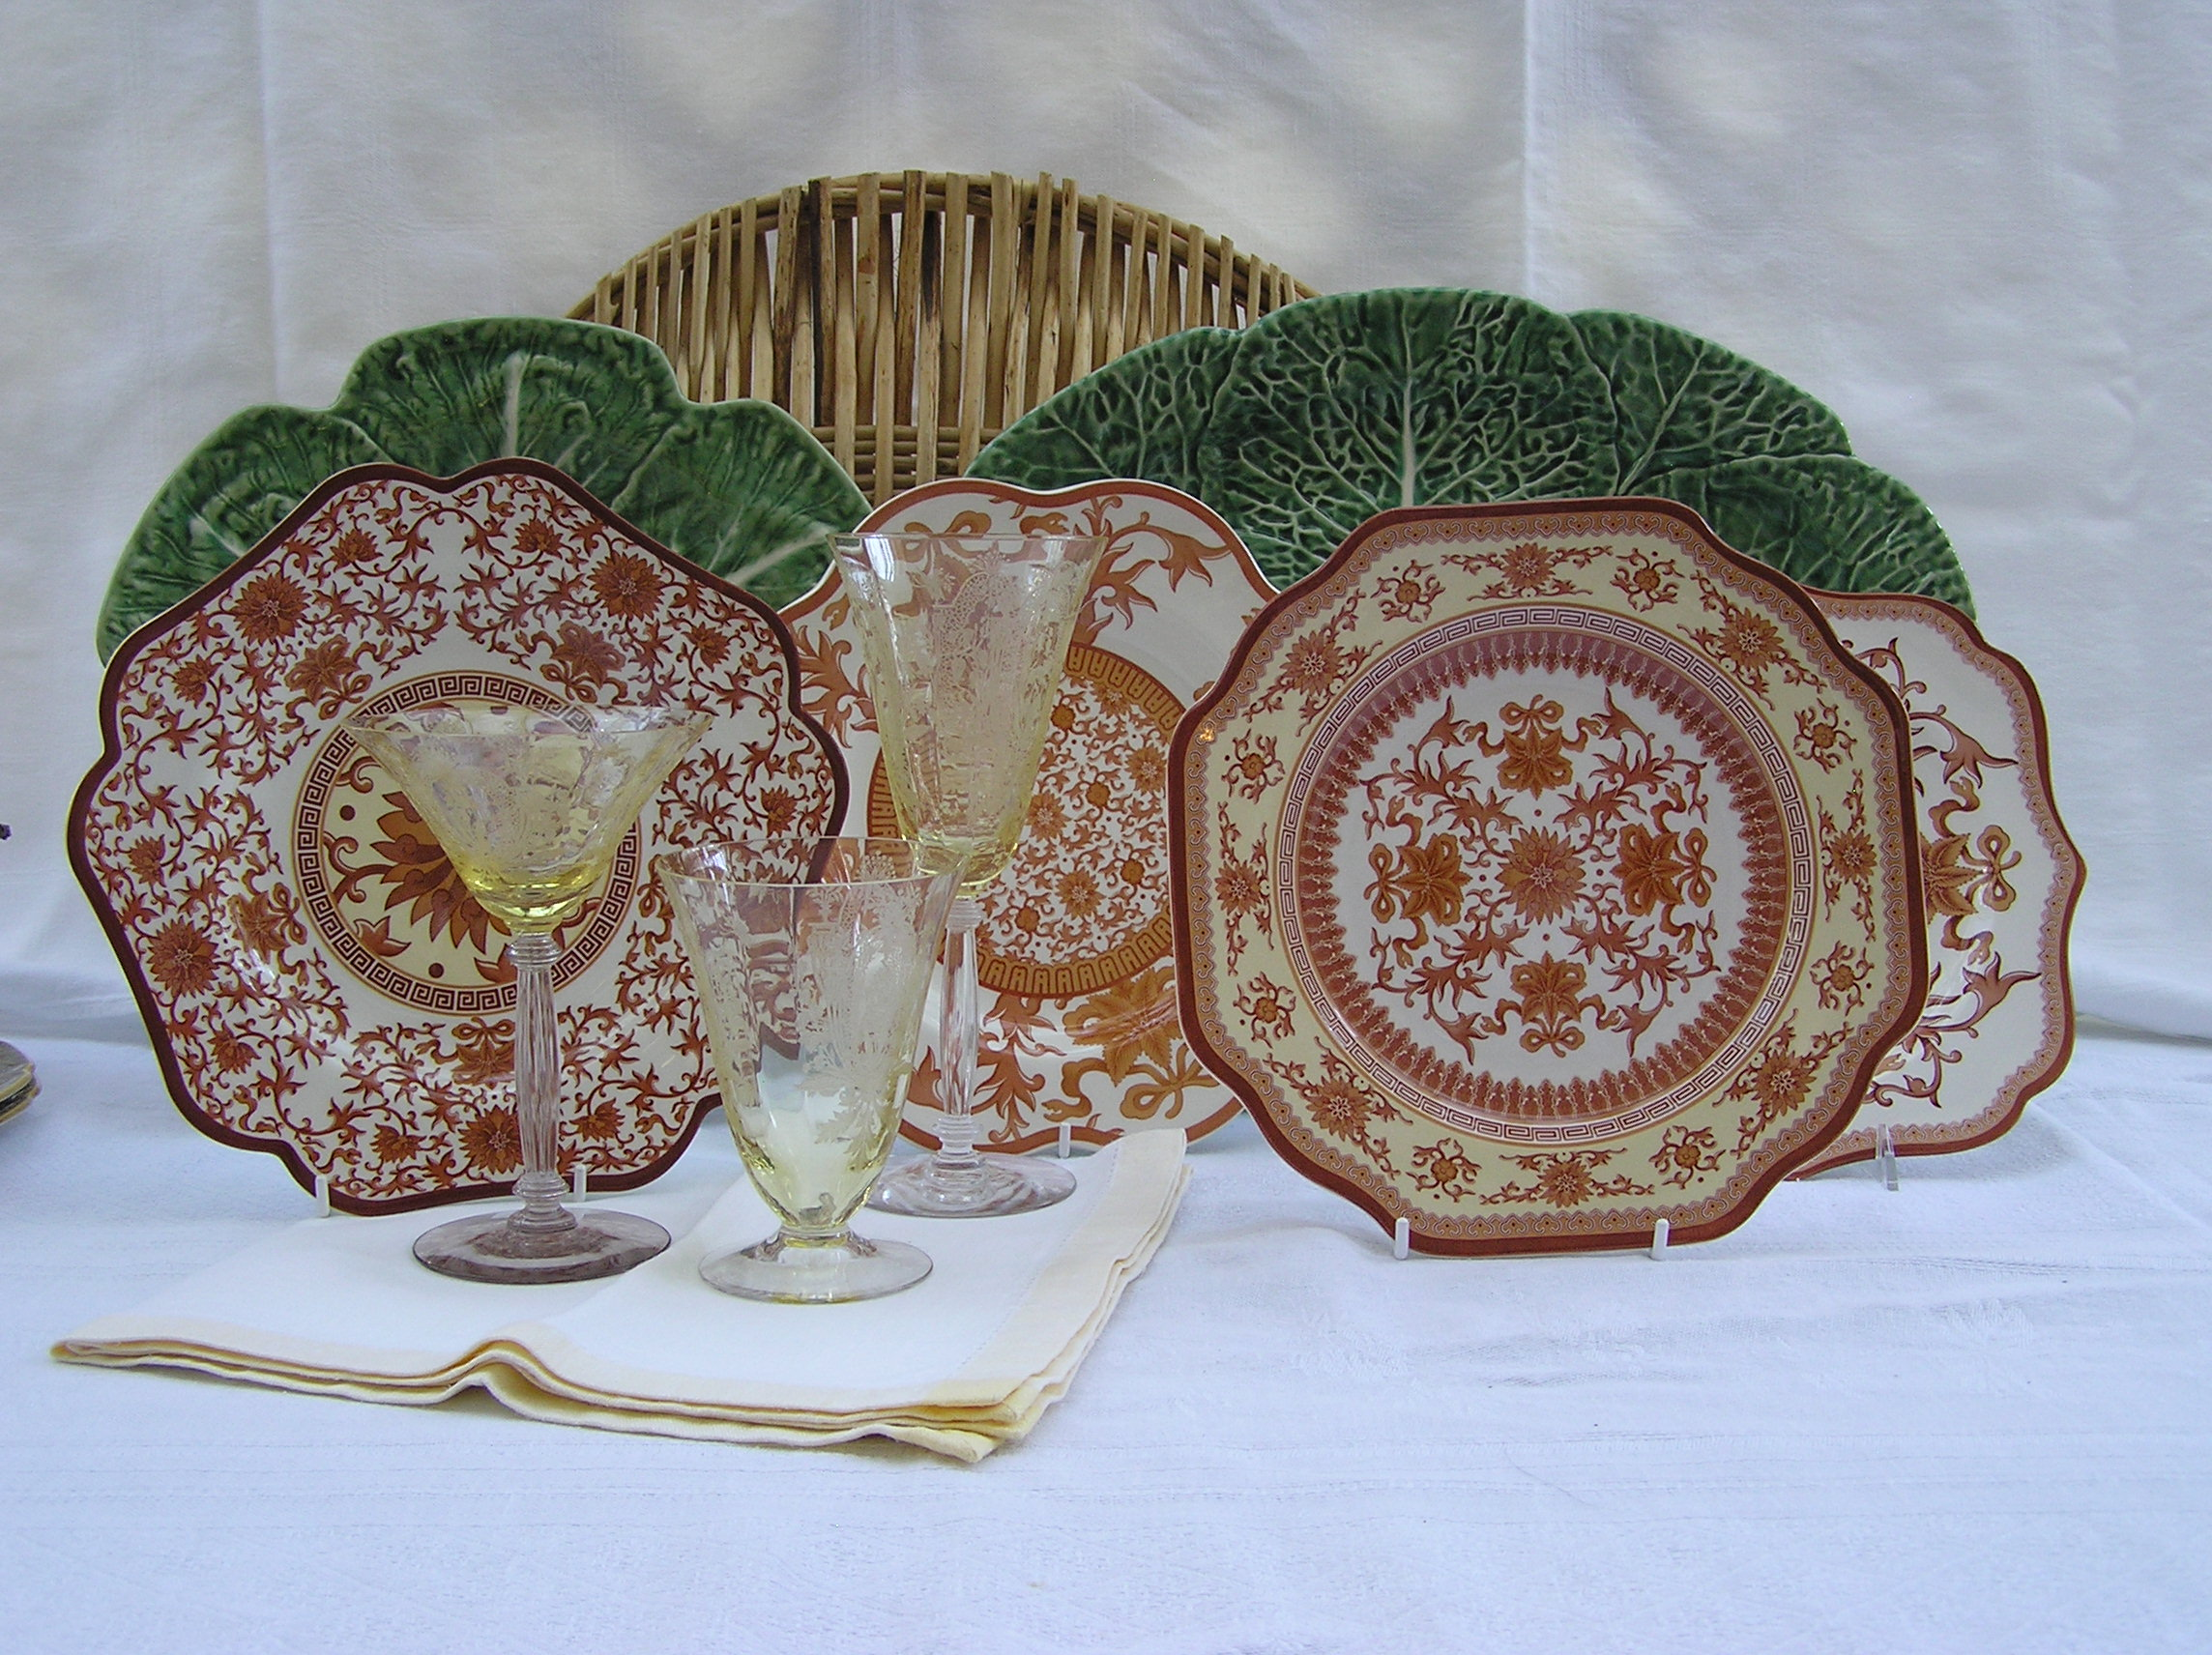 Home Accents Indian Red Series by Spode